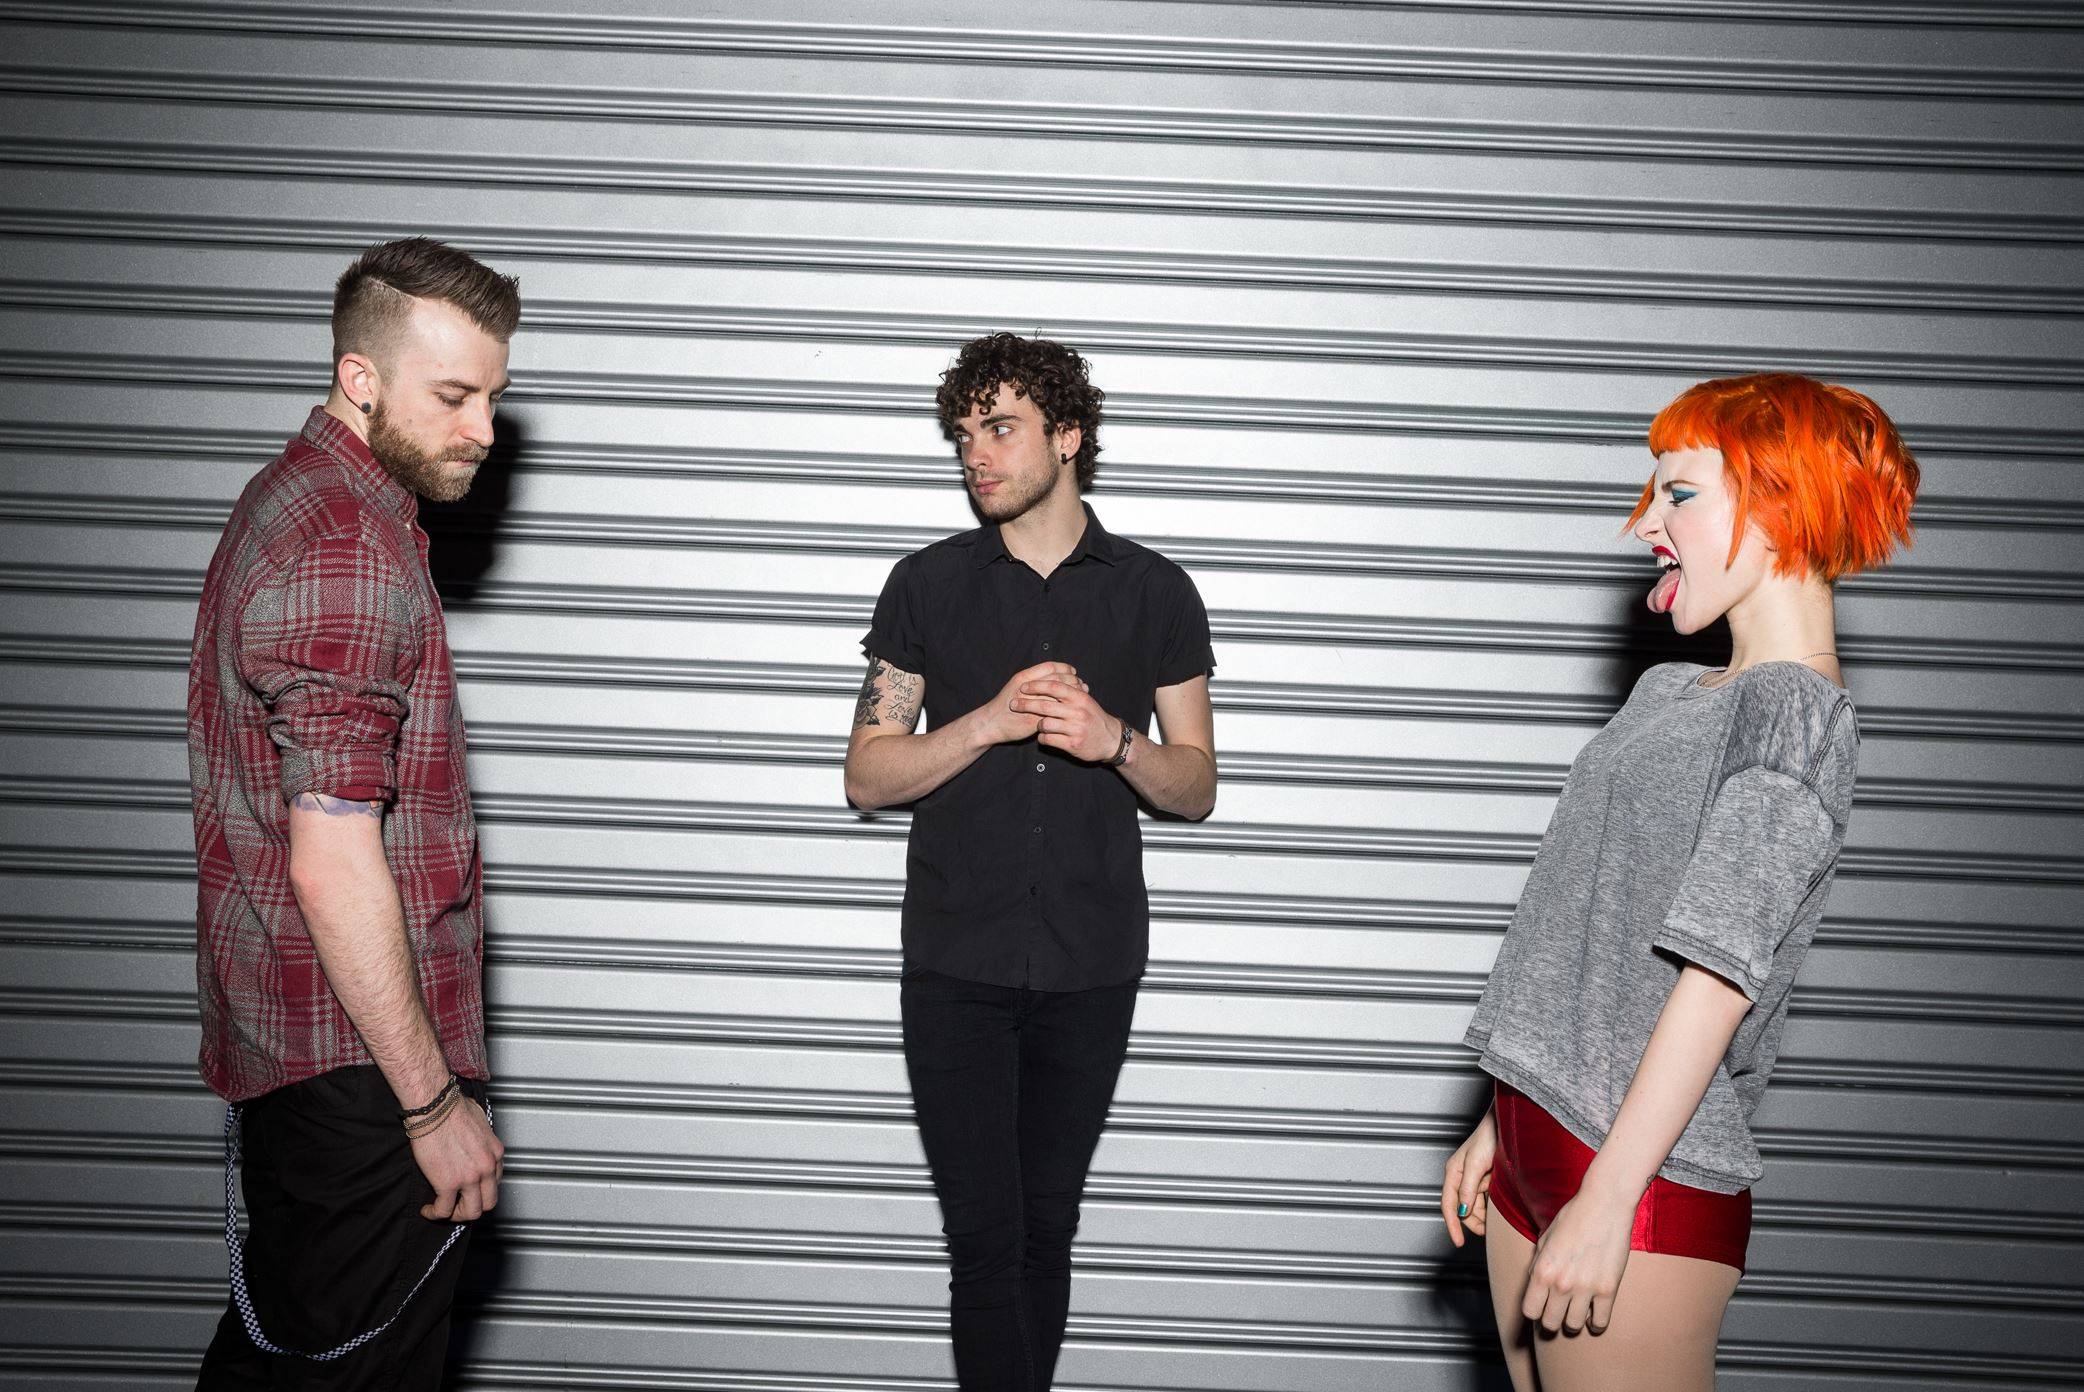 Fall Out Boy and Paramore bounce back with big hits ...